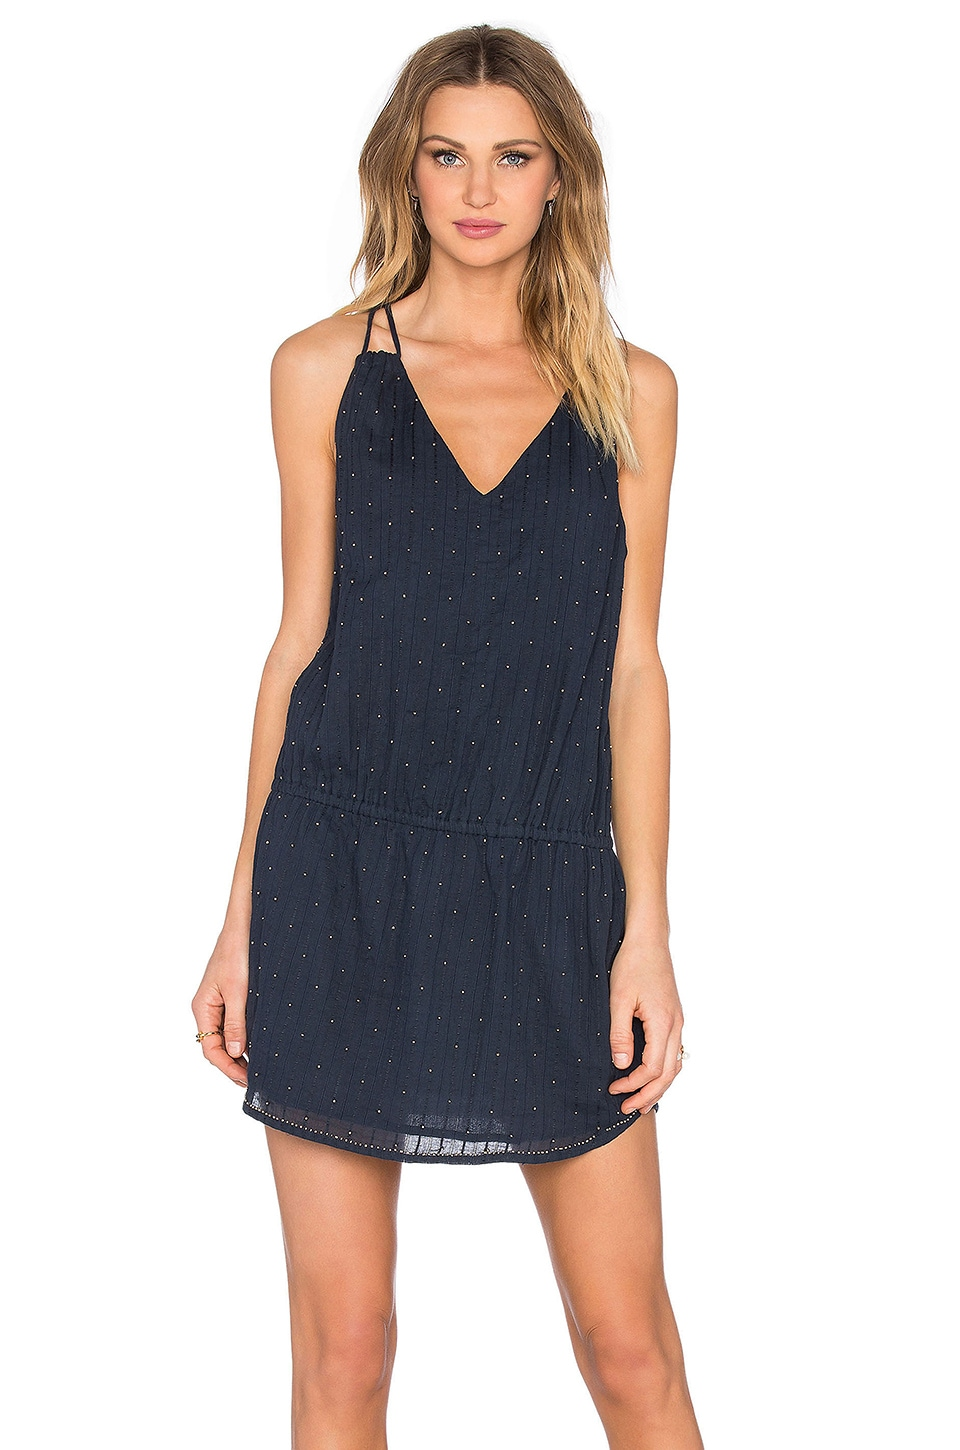 Chloe Oliver The Anchor's Away Dress in Navy & Gold